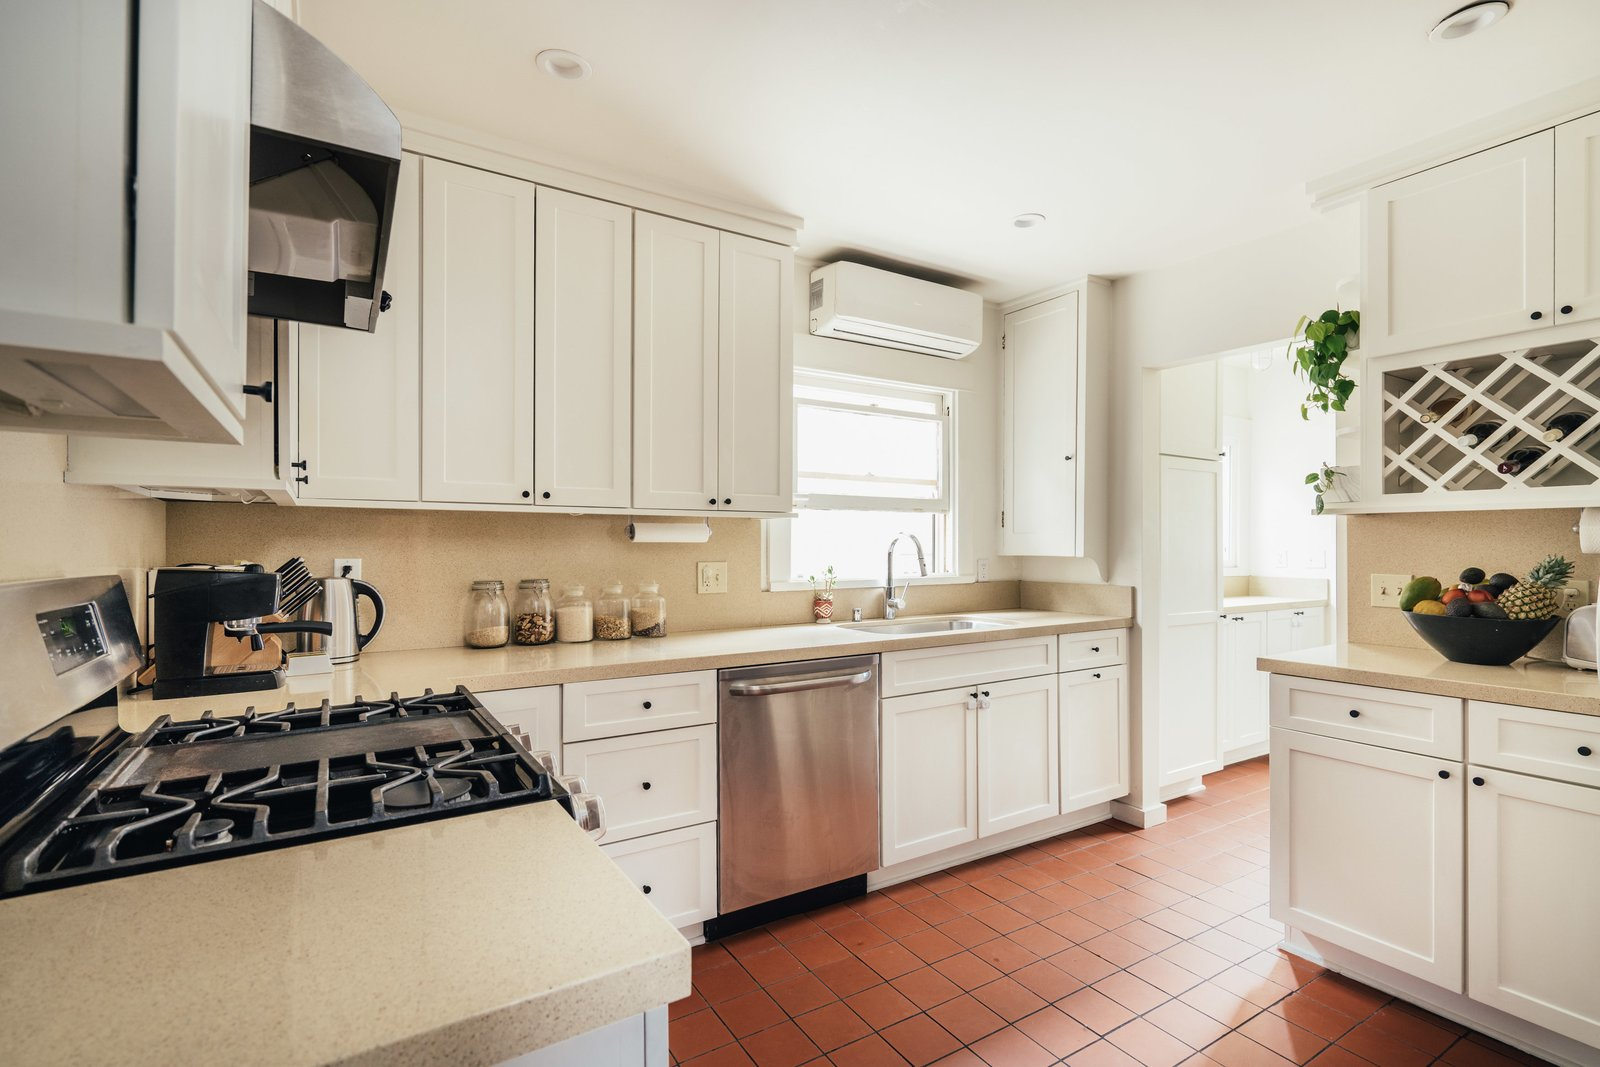 Kitchen, Range, White Cabinet, Range Hood, Drop In Sink, Brick Floor, Dishwasher, and Ceiling Lighting The fully renovated kitchen features custom cabinetry and new stainless-steel appliances.   Photo 6 of 16 in A Cheery Craftsman Duplex in L.A. With Adjacent Studio Space Asks $1.25M